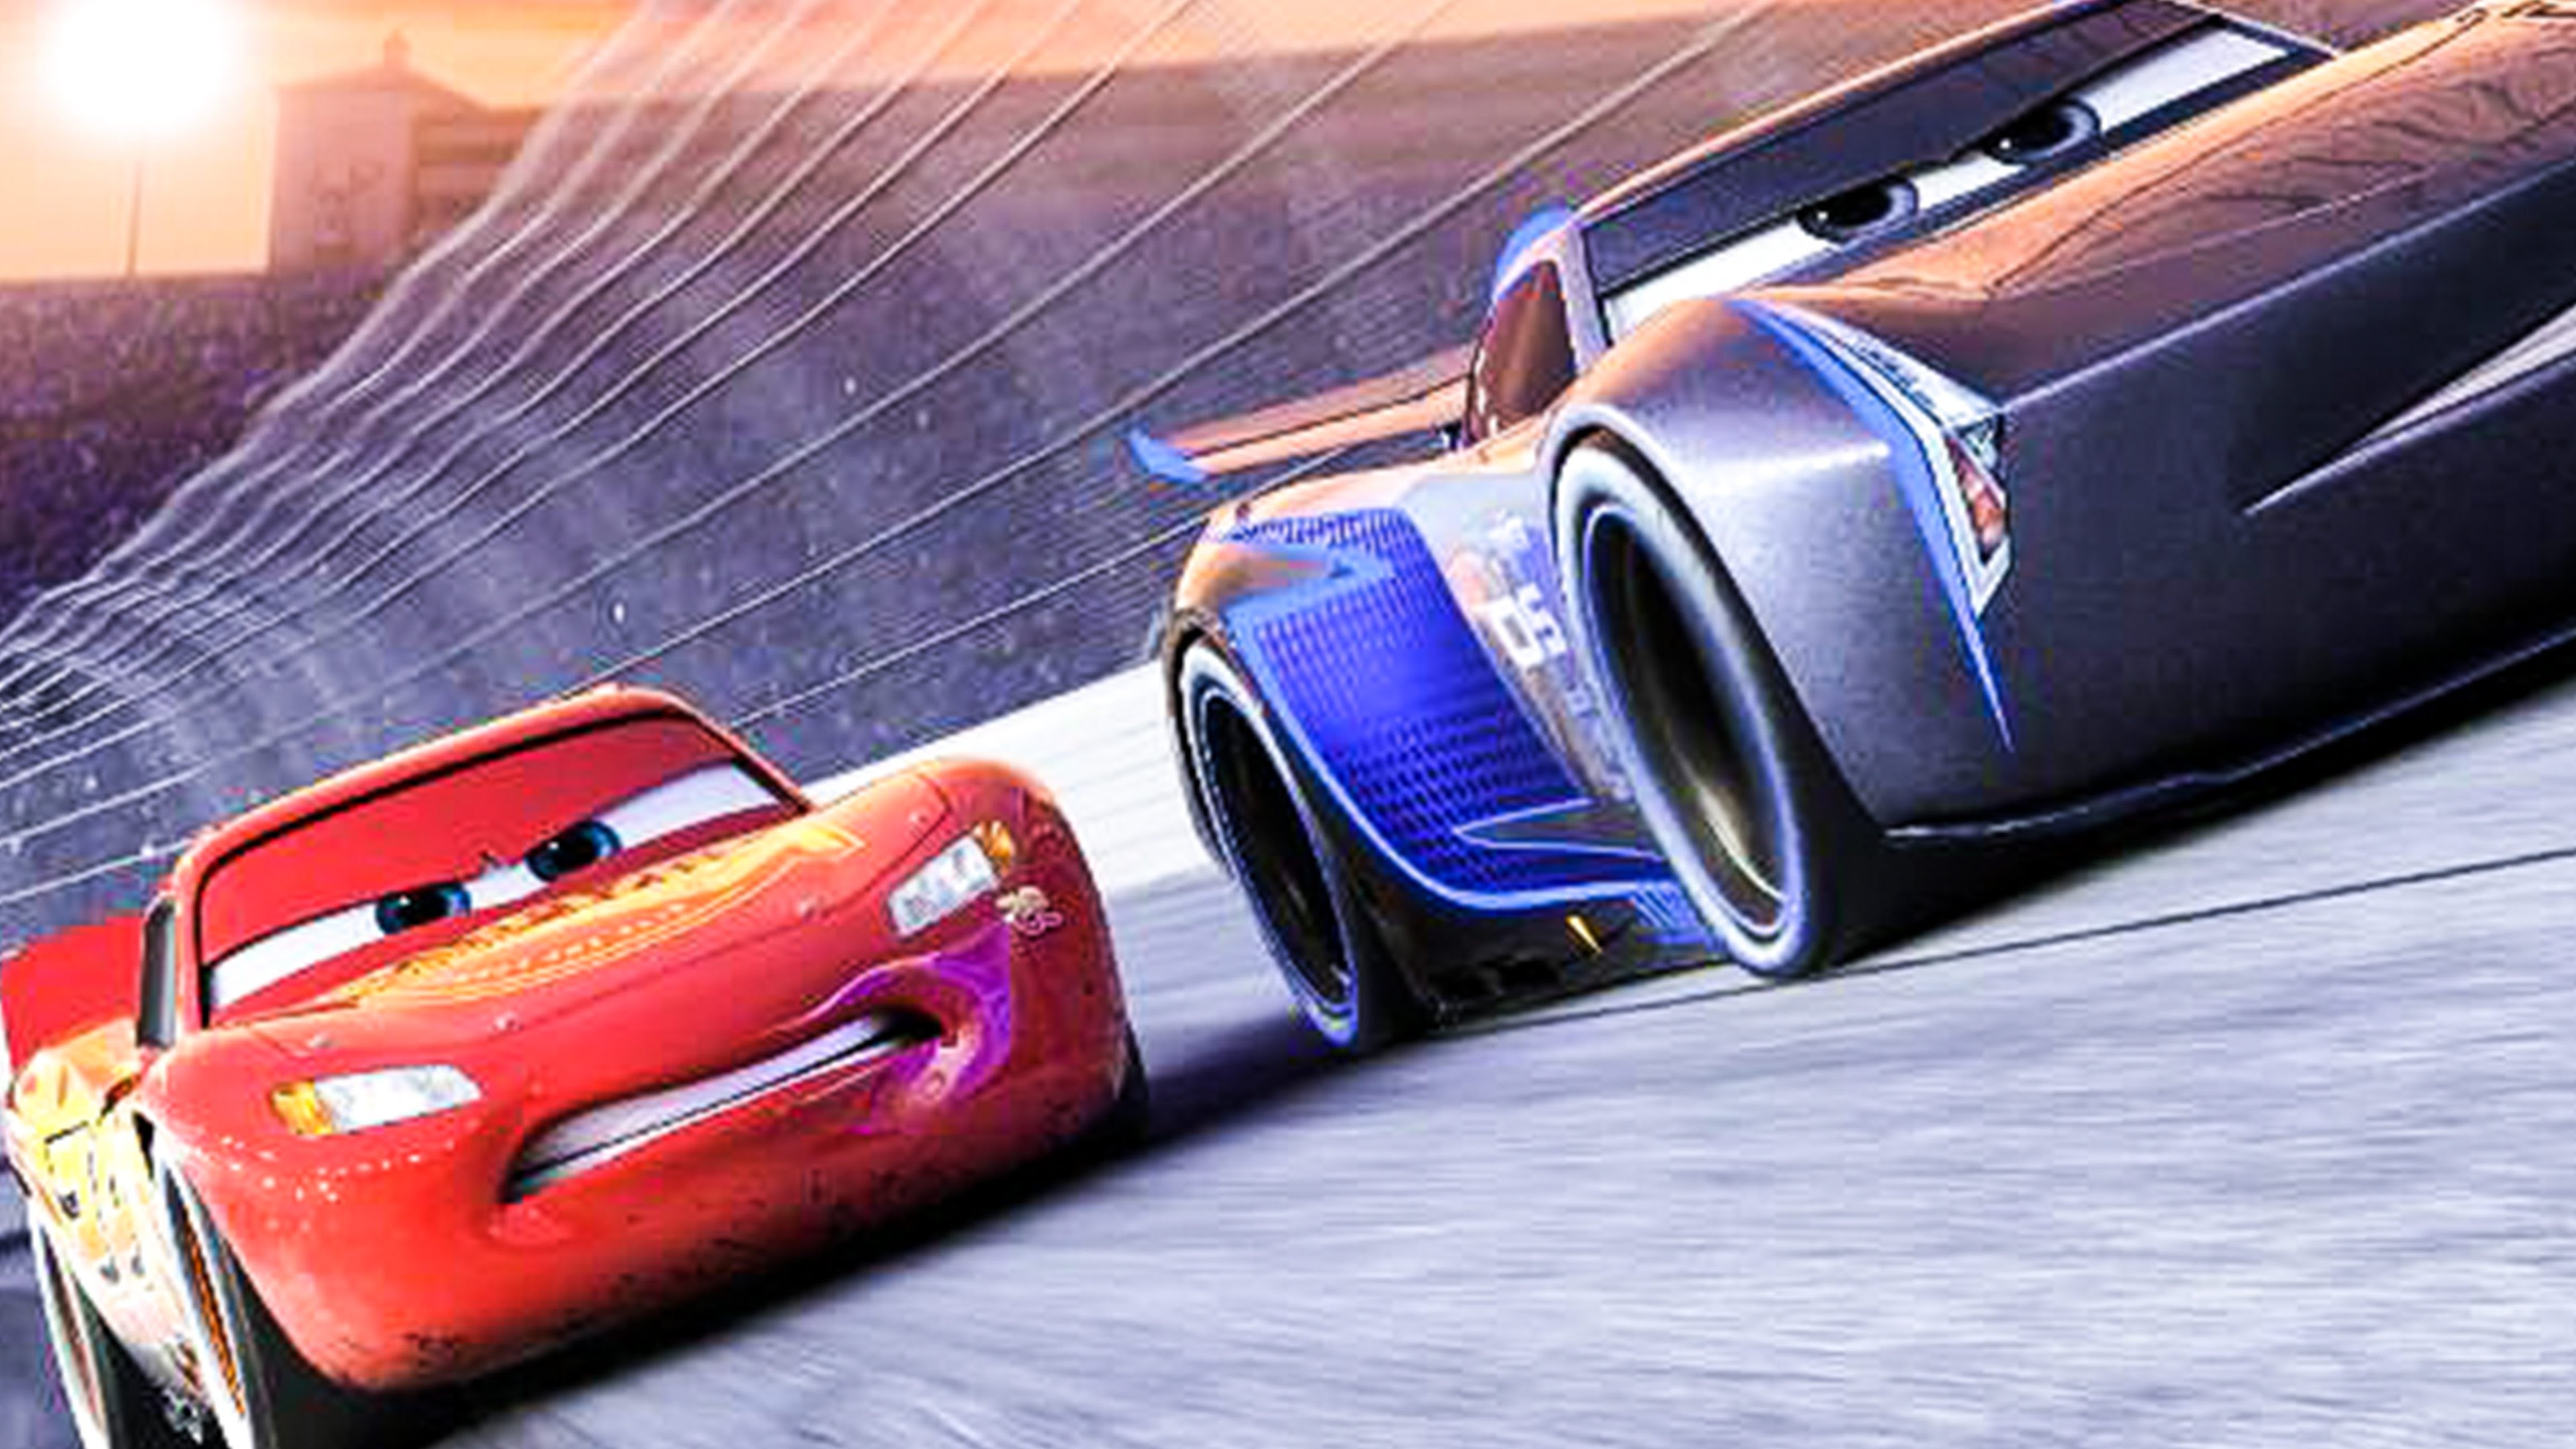 4 Clips of Cars 3 : Teaser Trailer